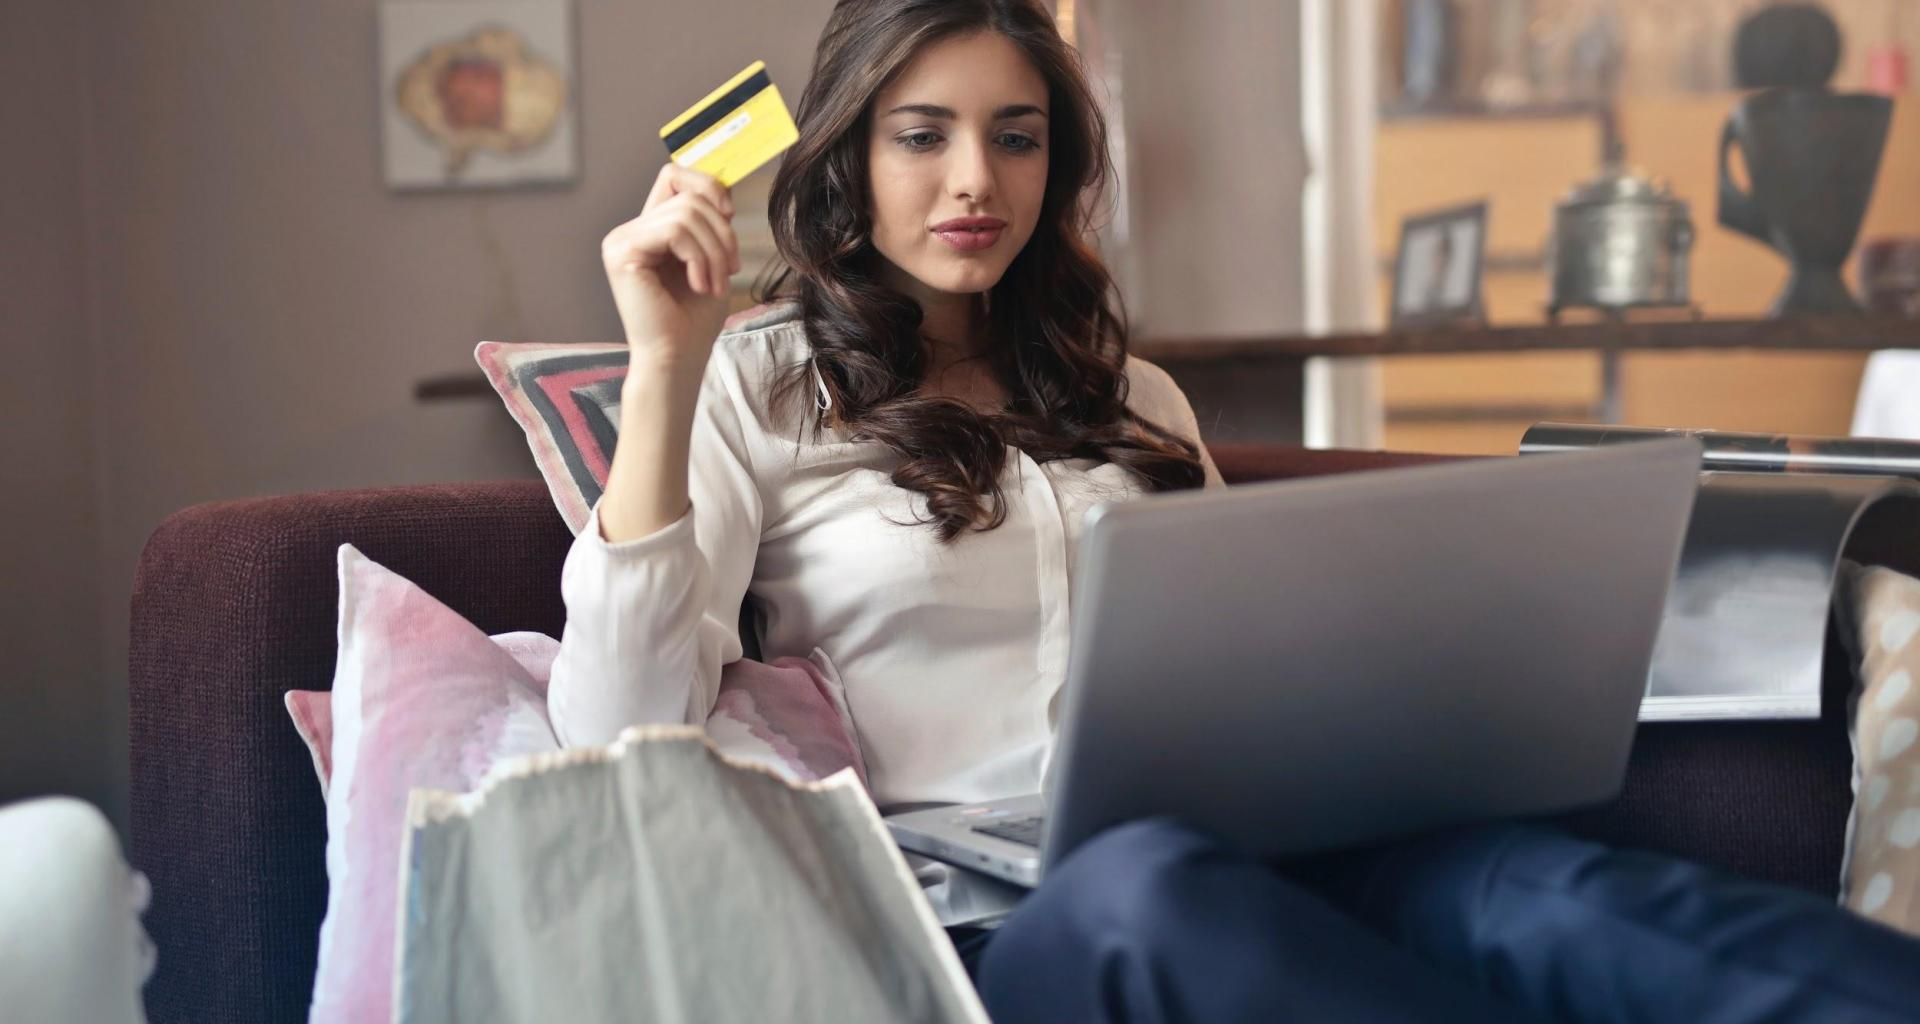 5 tips to make your online store more professional 1